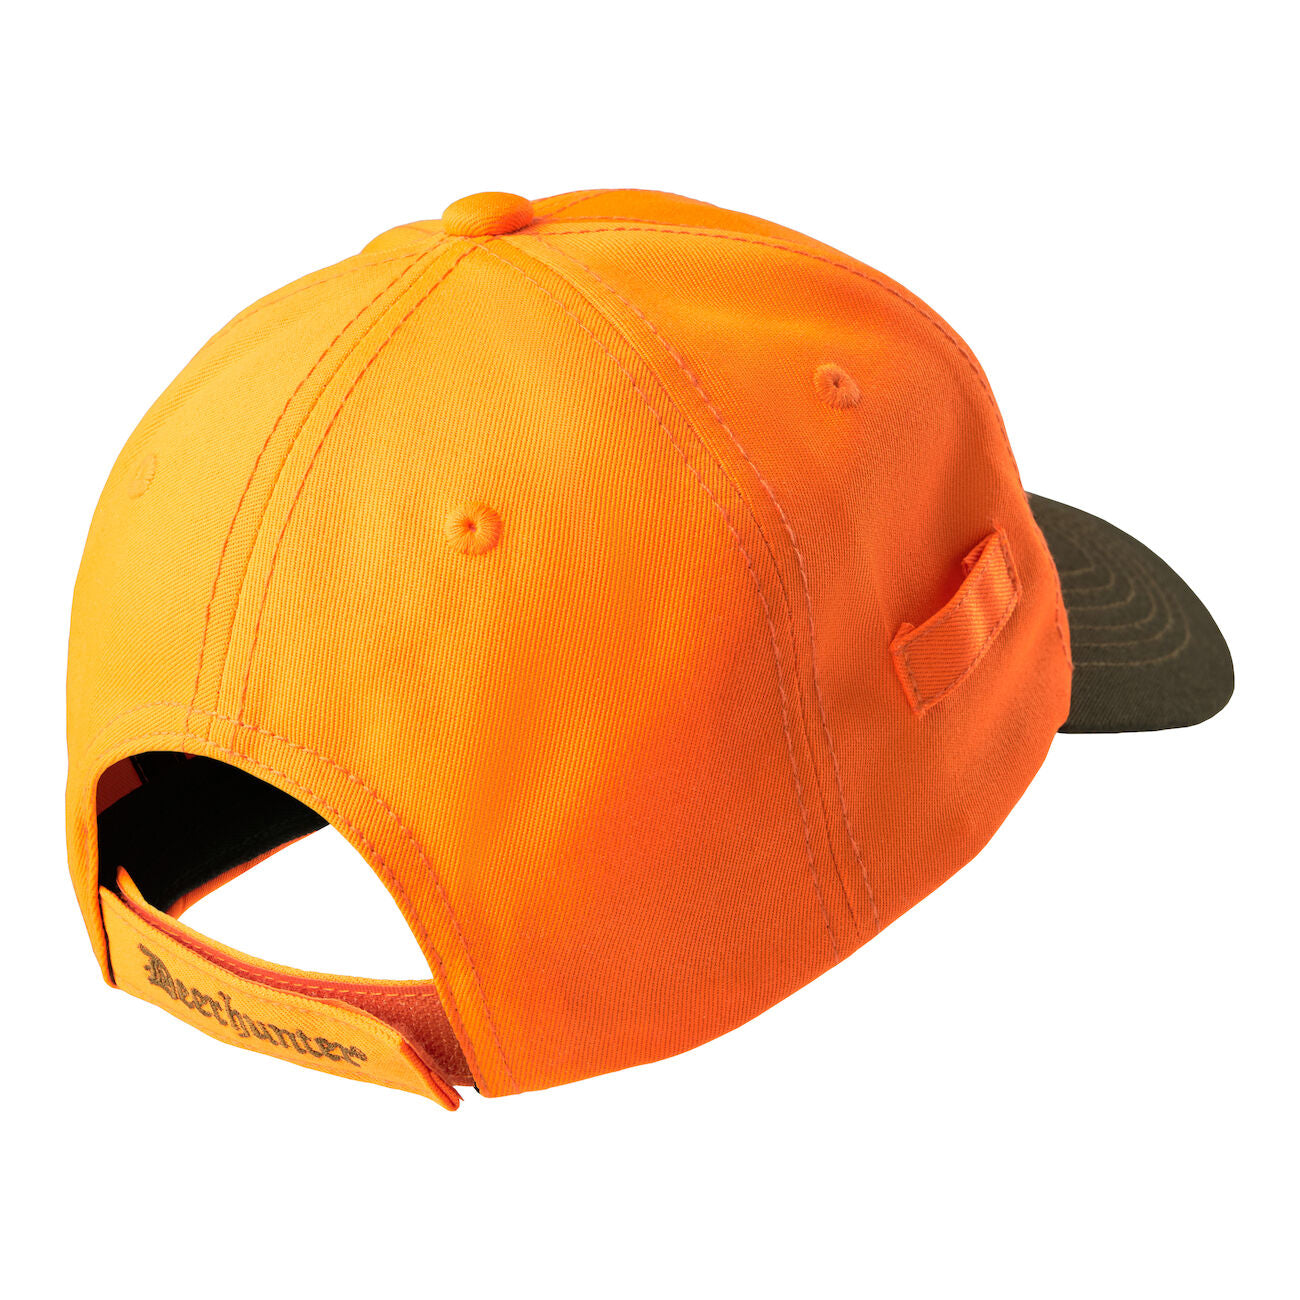 Deerhunter Bavaria Cap with shield - Orange - One Size